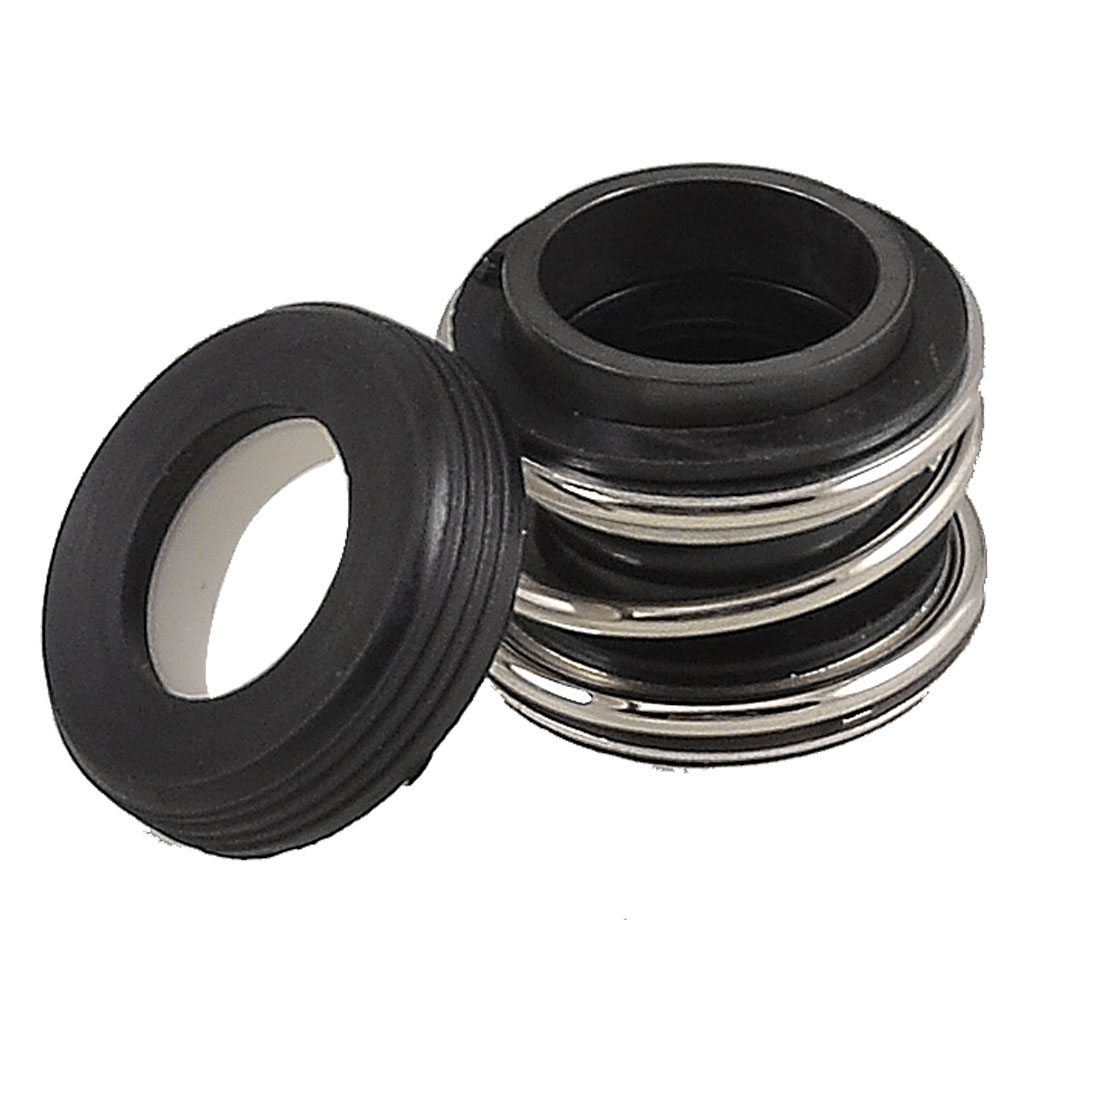 MB1-14 Replaceable 14mm Spring Inbuilt Mechanical Shaft Seal for Pumps